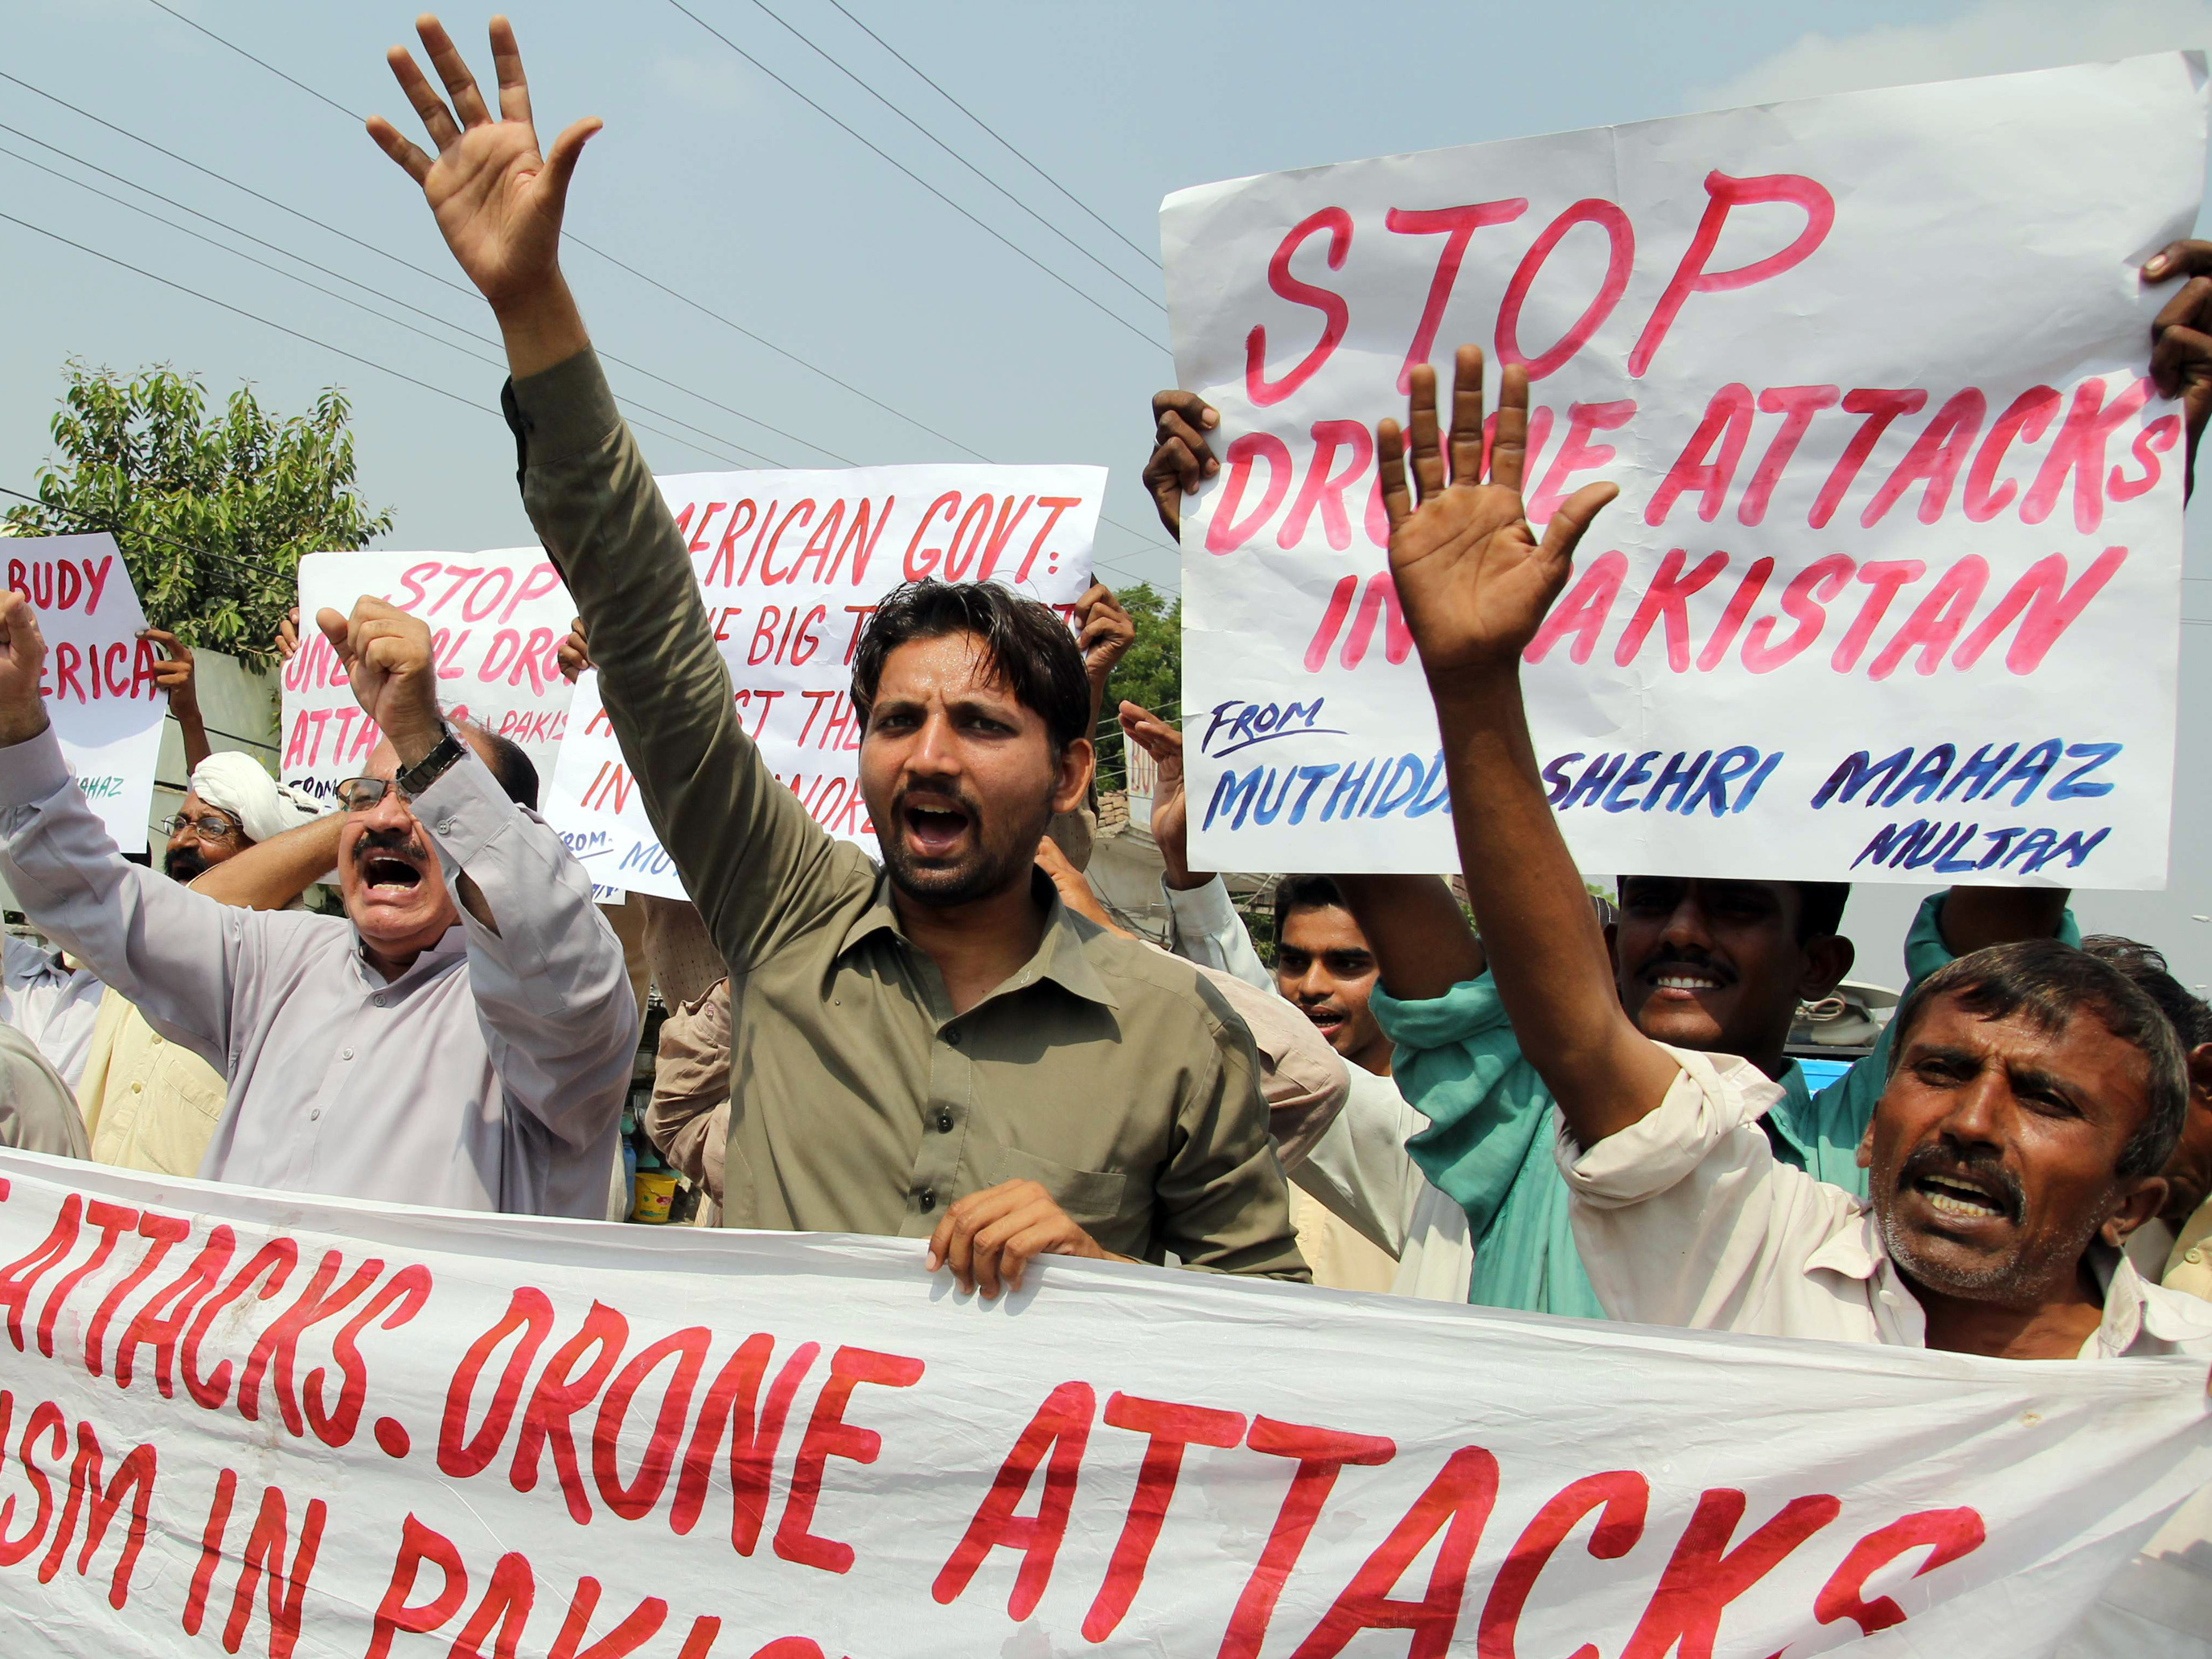 U.S. Drone Strikes Violate International Law, Reports Allege